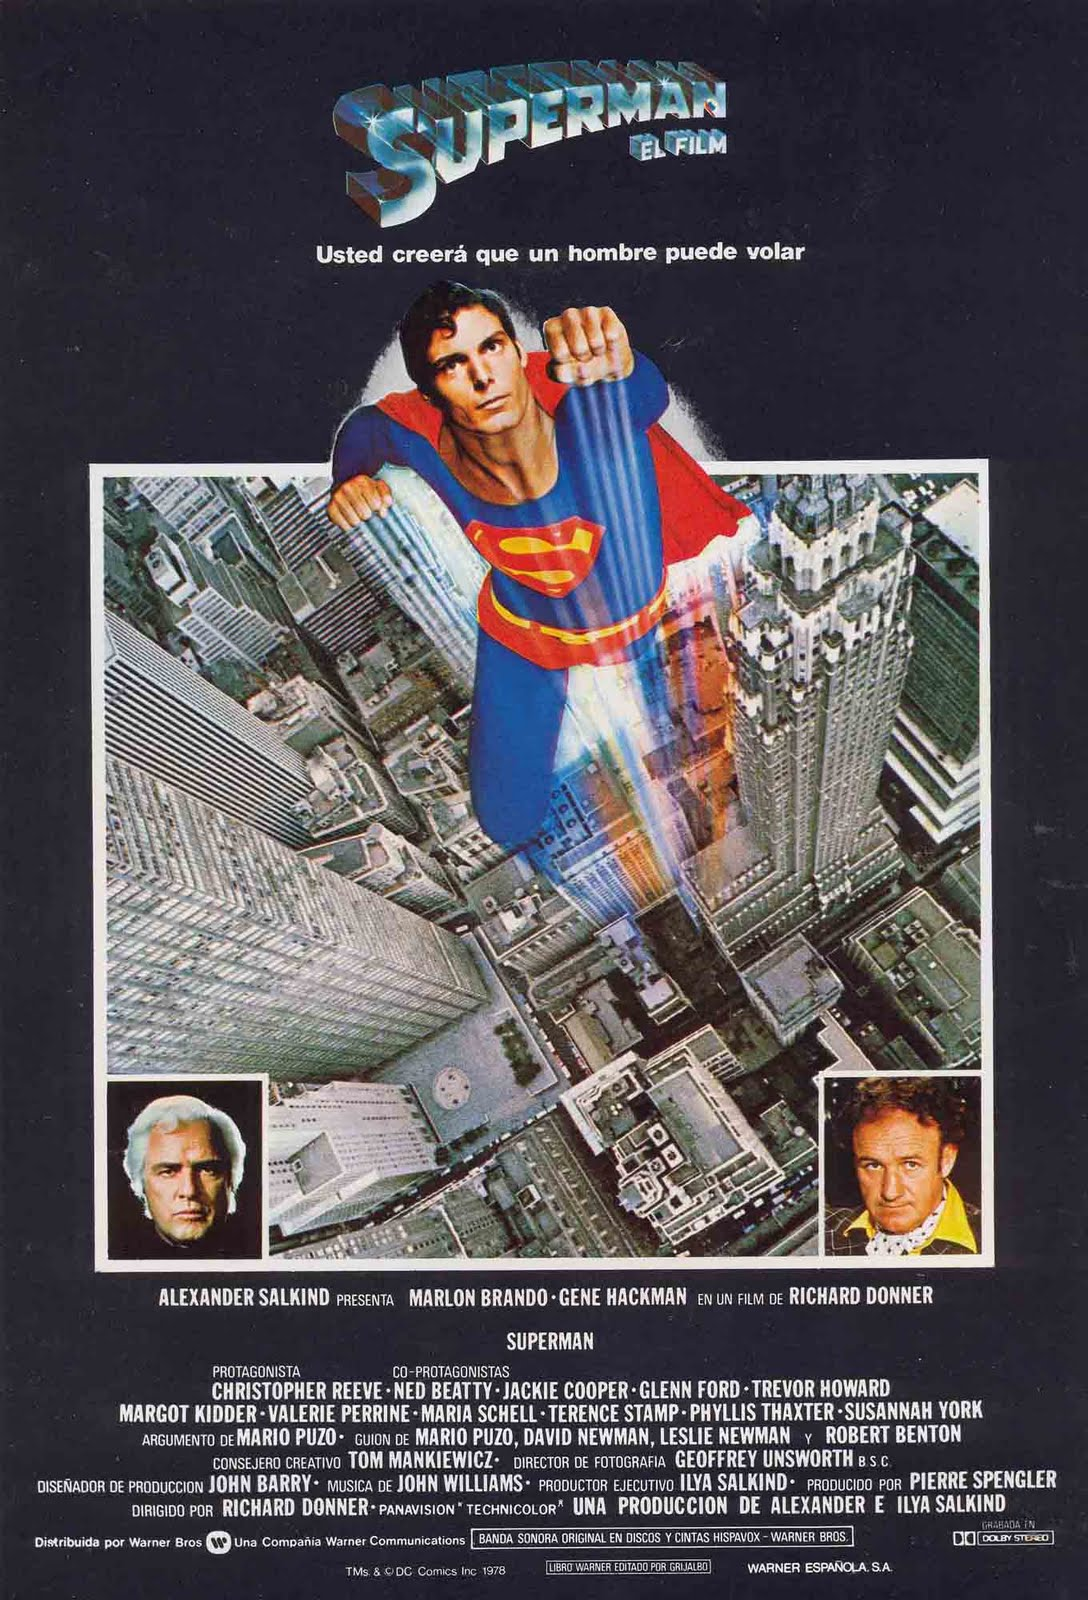 MOVIE POSTERS: SUPERMAN (1978)